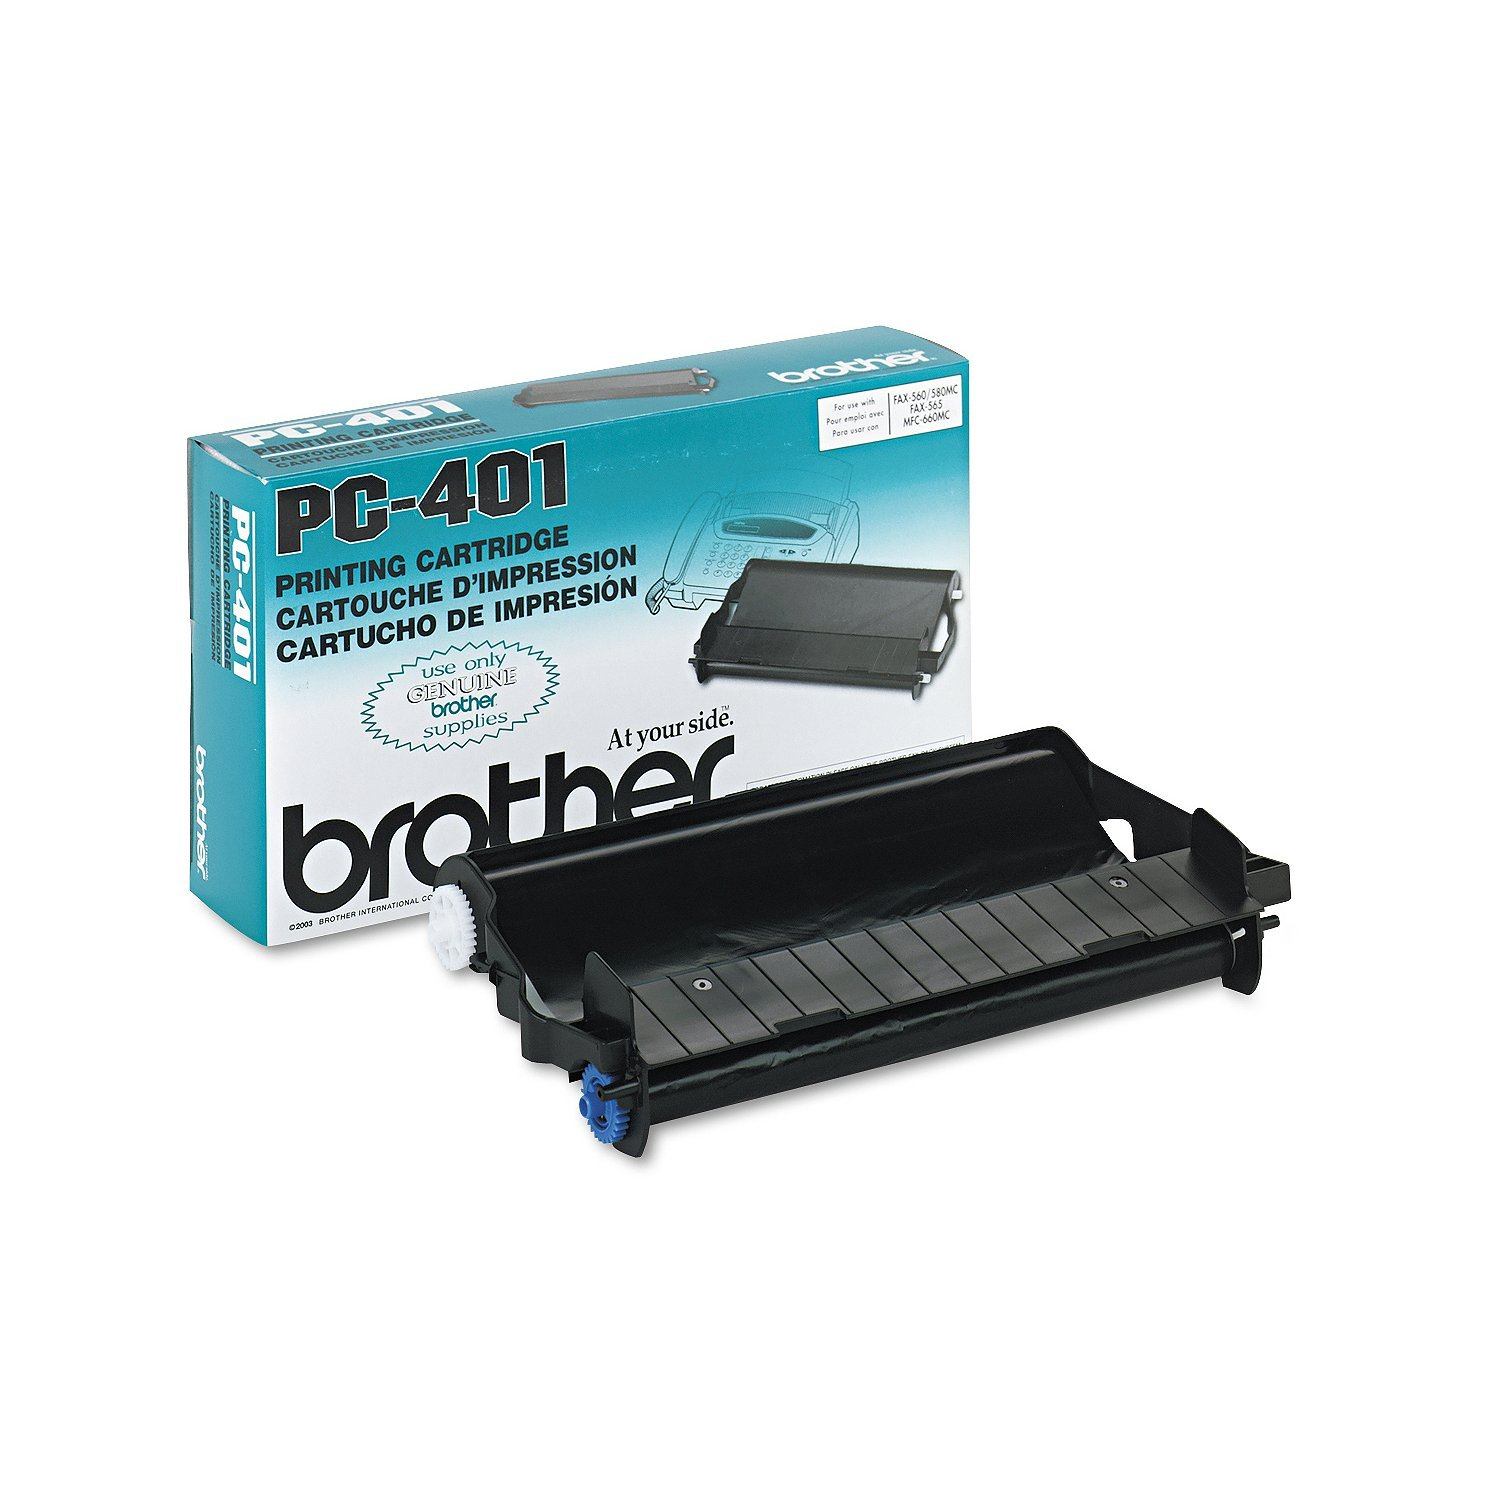 Brother PC401 Plain Paper Fax Cartridge